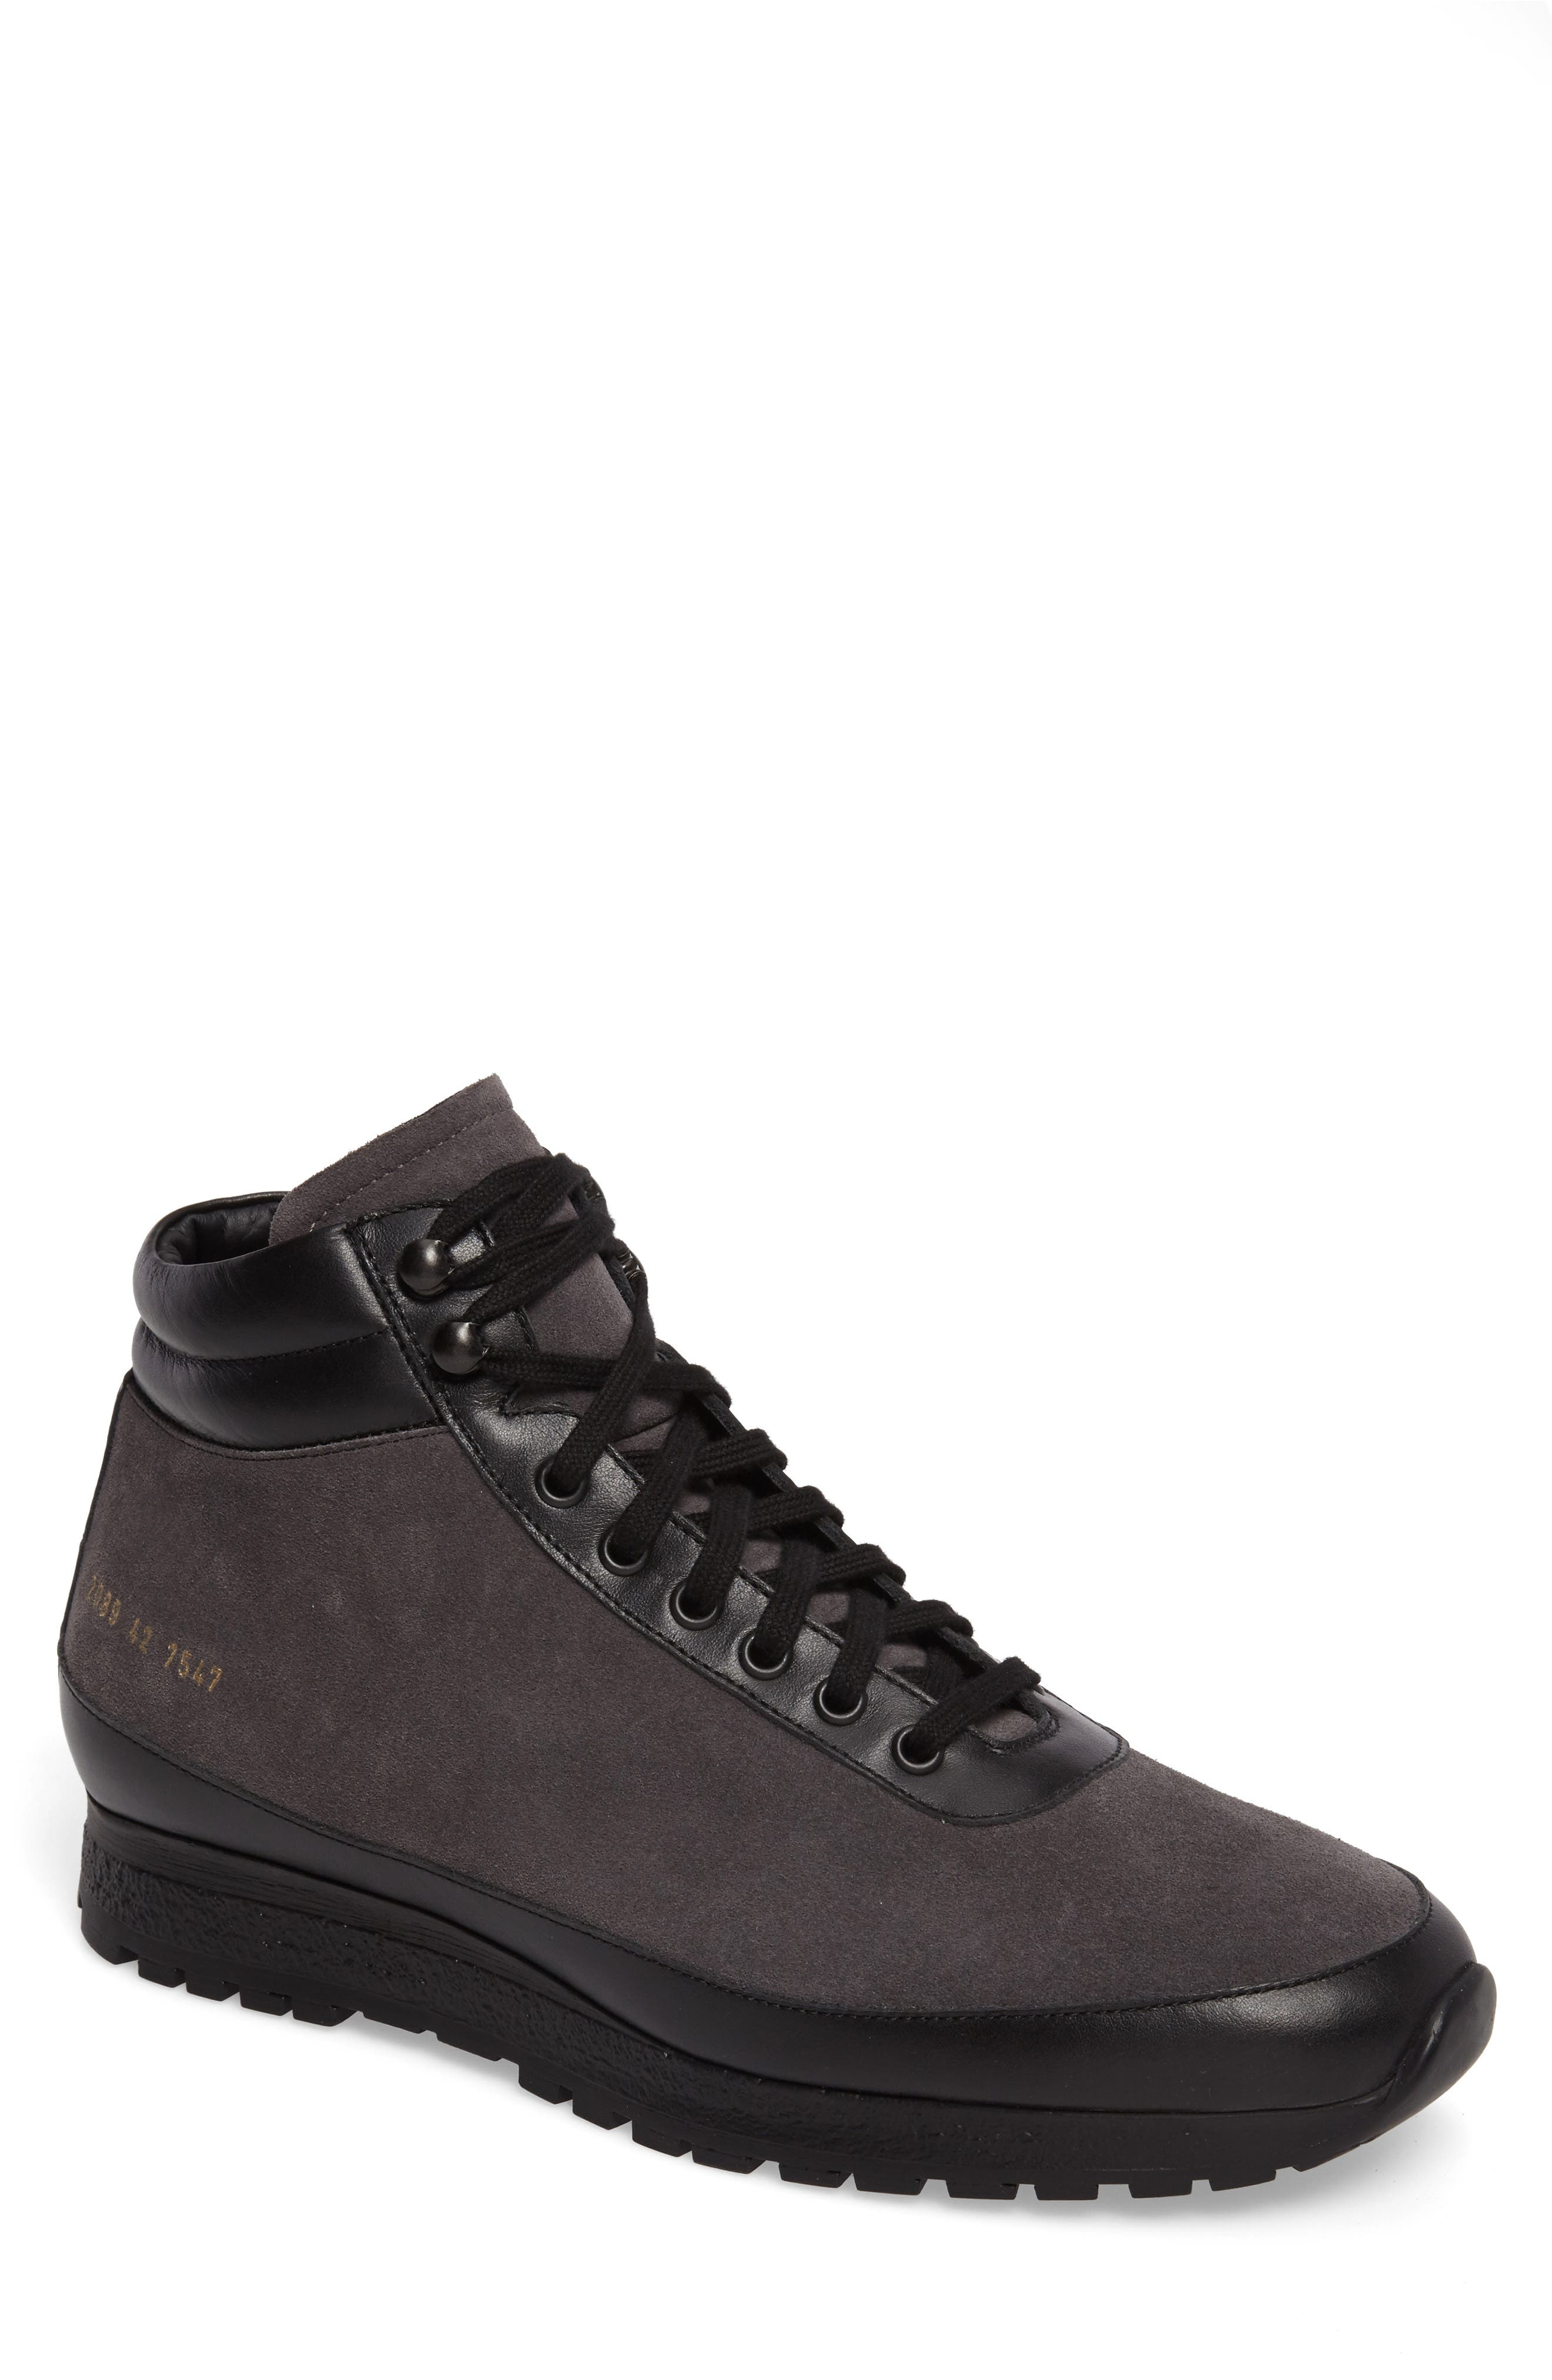 Main Image - Common Projects x Robert Geller Trek High Top Sneaker (Men)